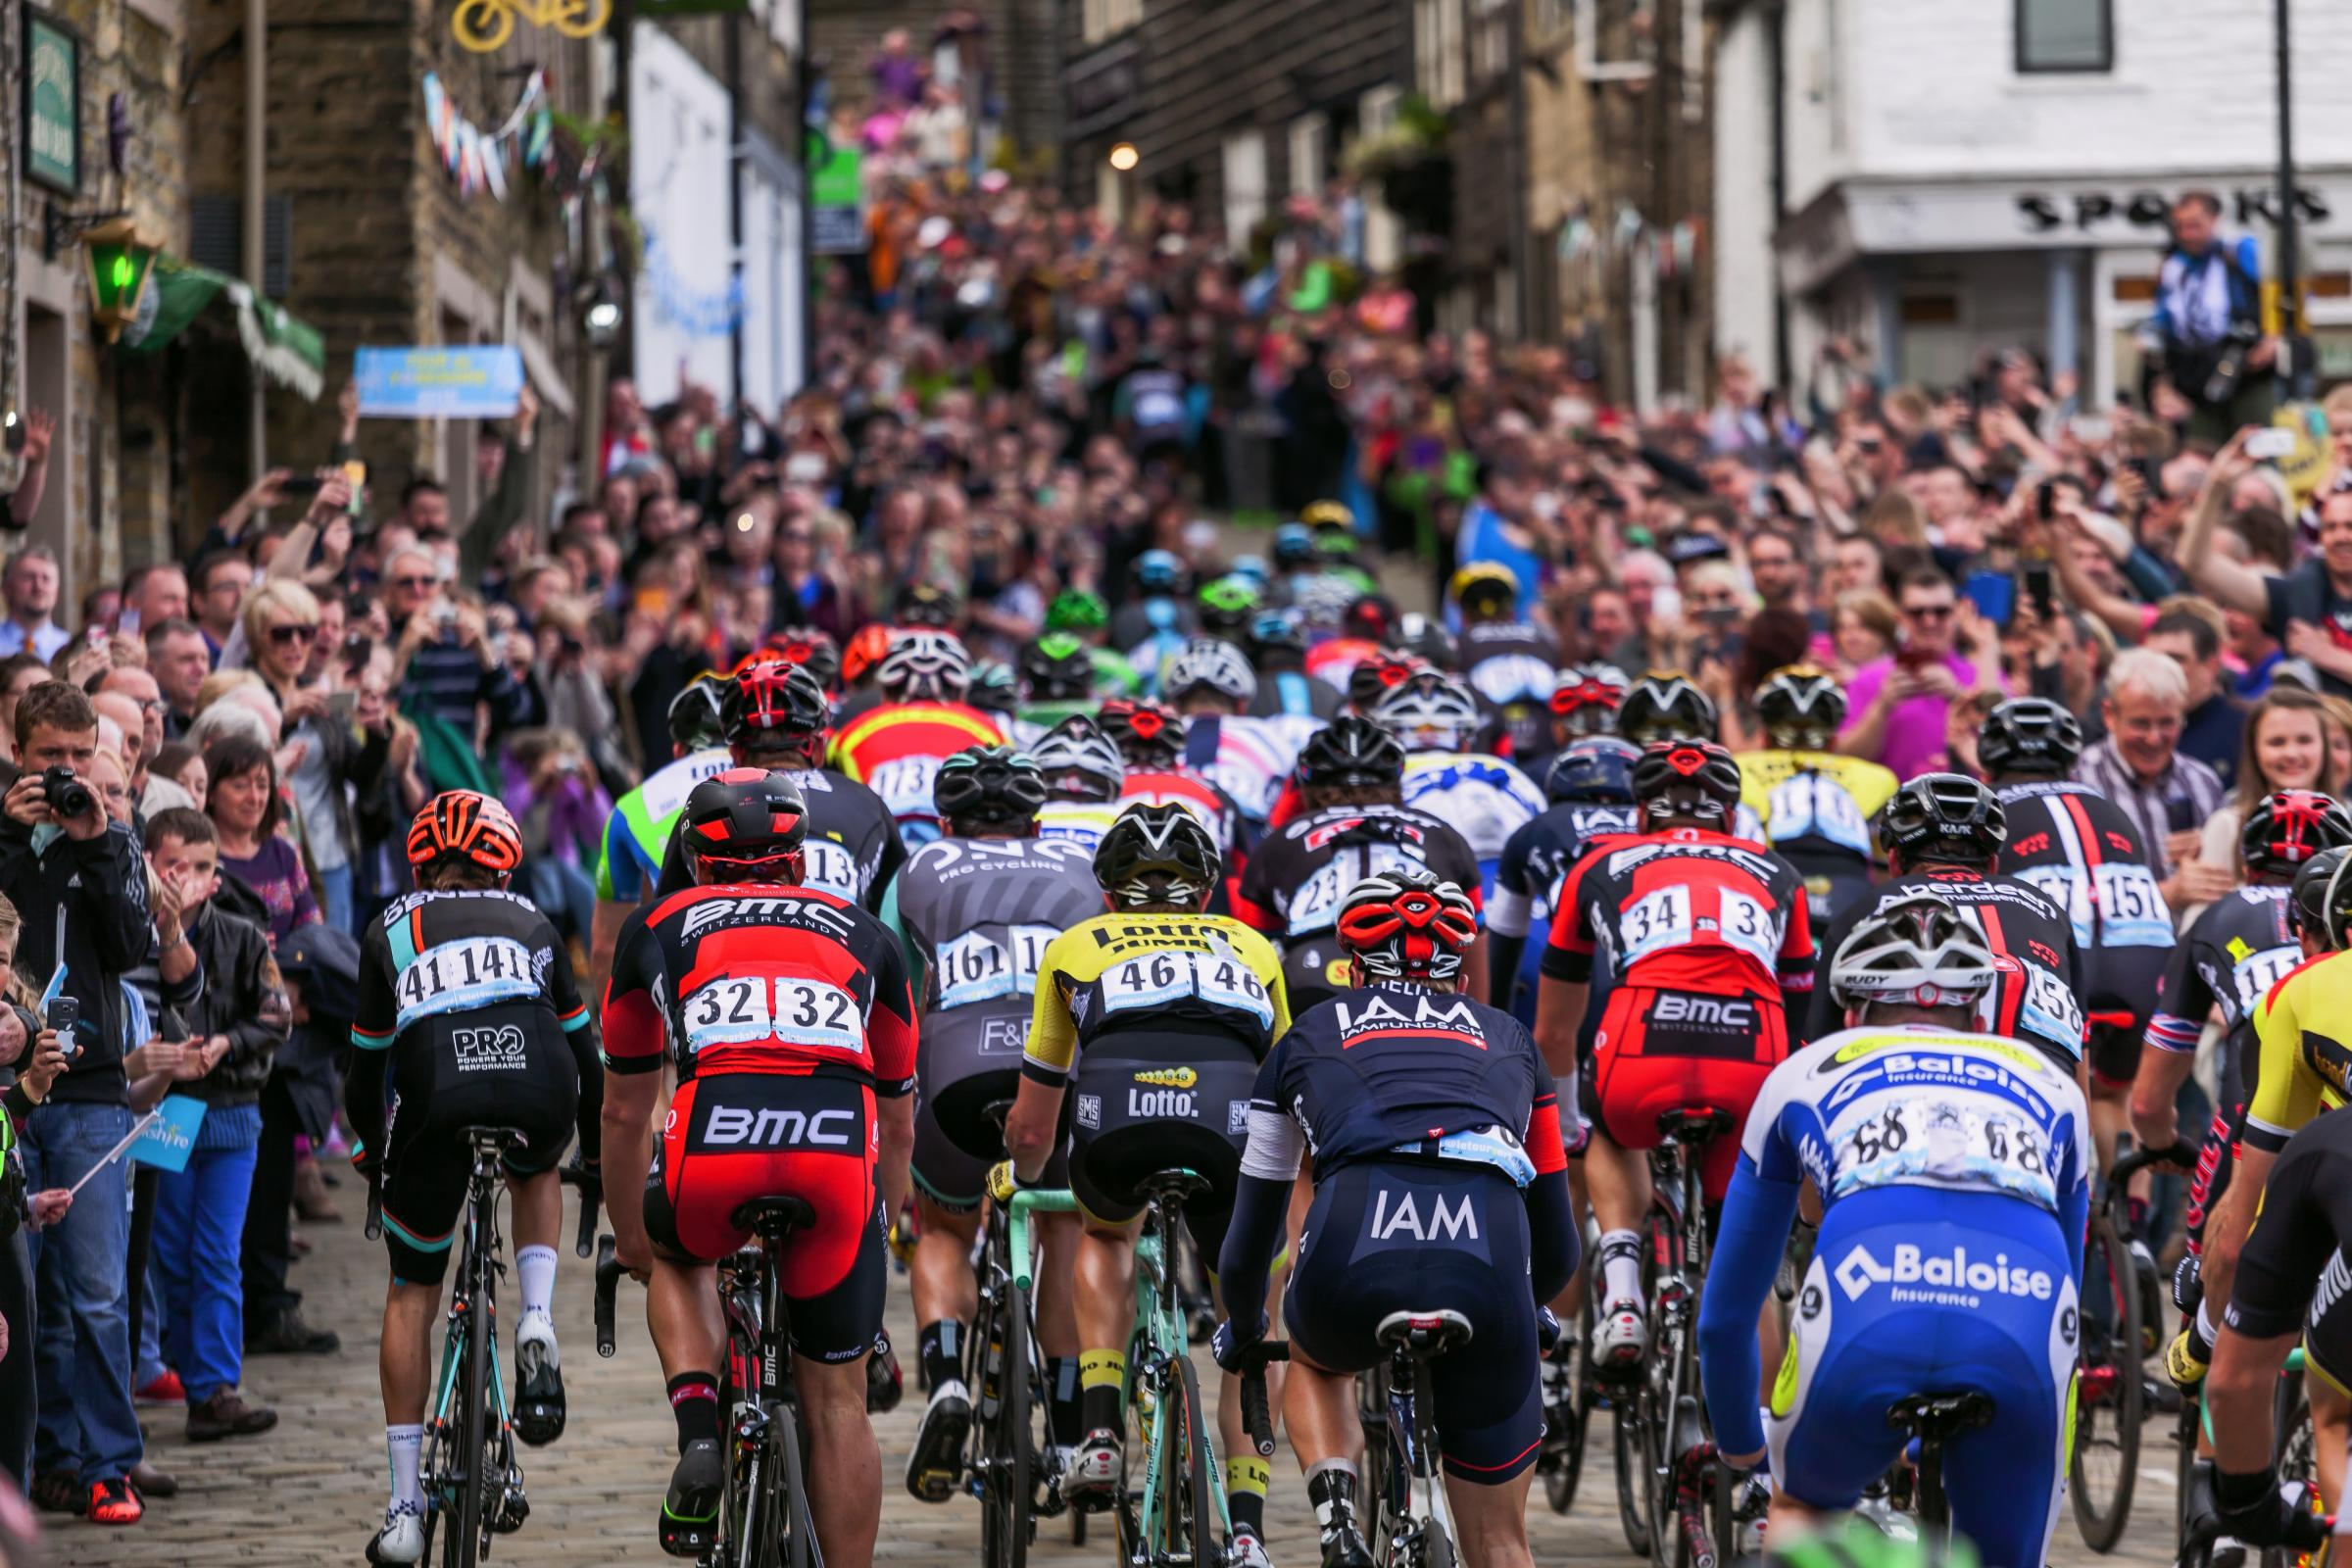 Riders in a previous Tour de Yorkshire head up a packed Haworth Main Street, which will again form part of the route this year